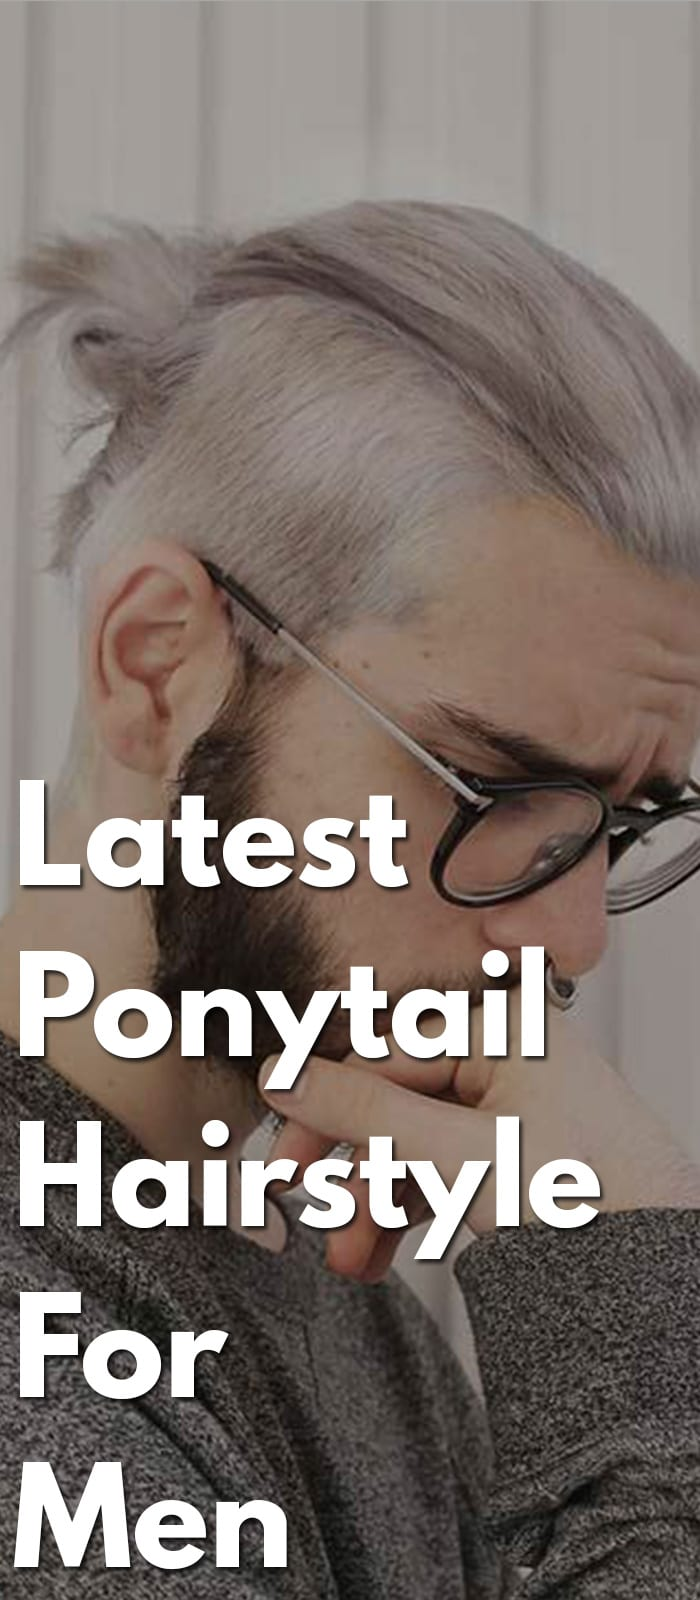 Latest-Ponytail-Hairstyle-For-Men.